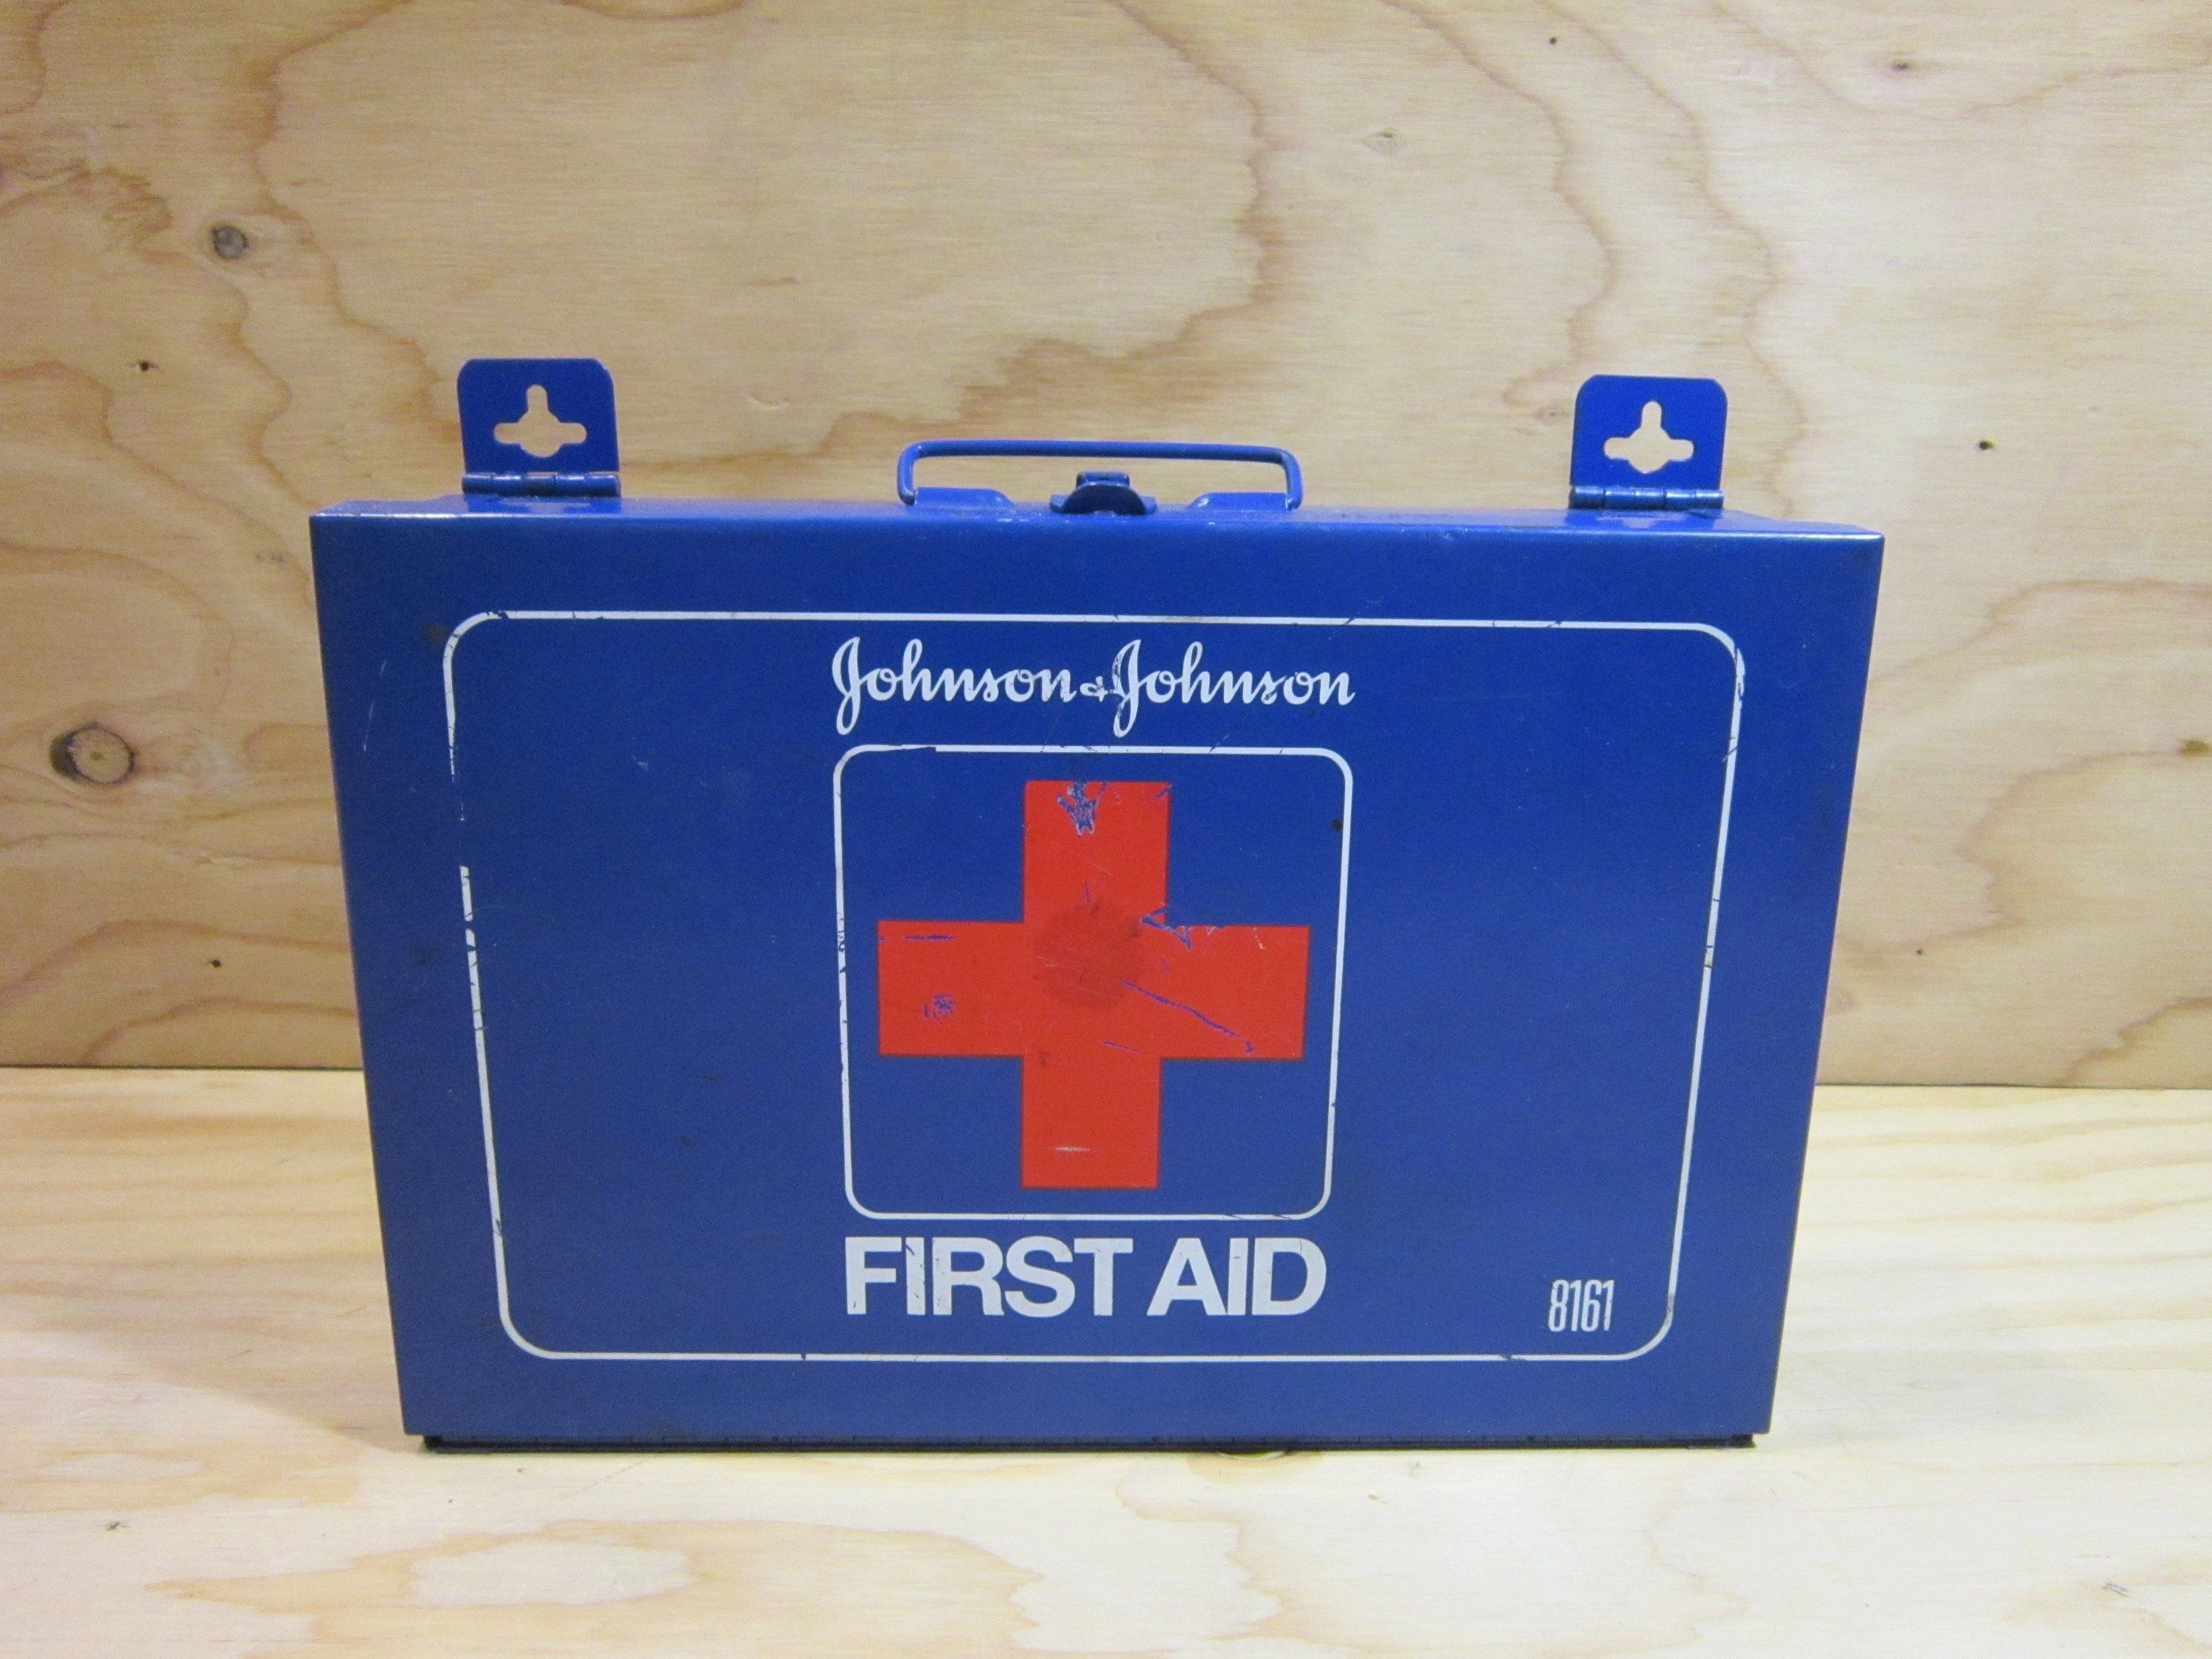 Vintage Johnson Johnson First Aid Kit 8161 In Blue Metal Johnson And Johnson First Aid Kit First Aid